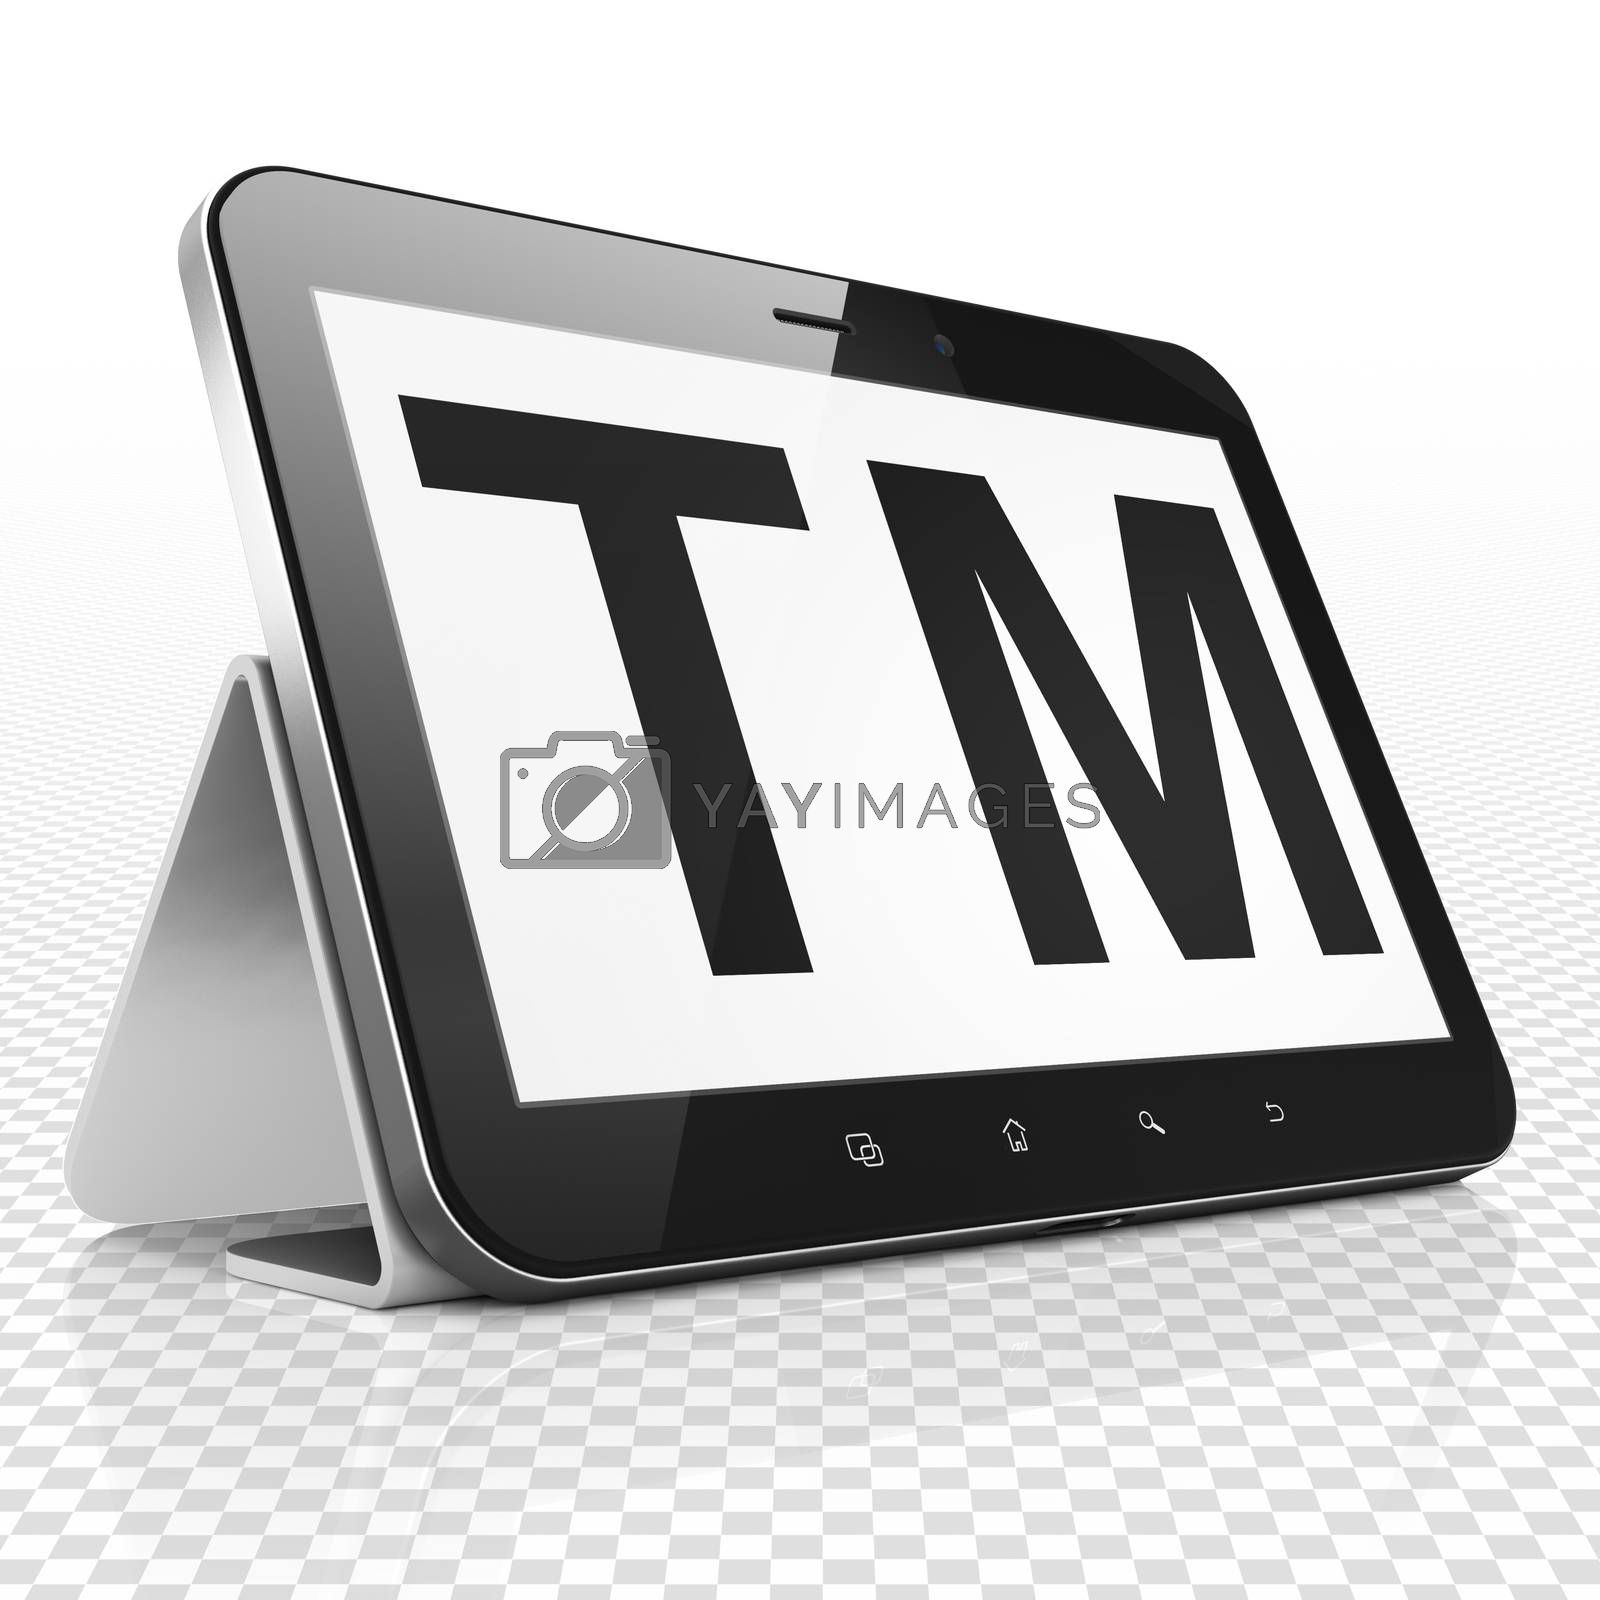 Law concept: Tablet Computer with Trademark on display by maxkabakov